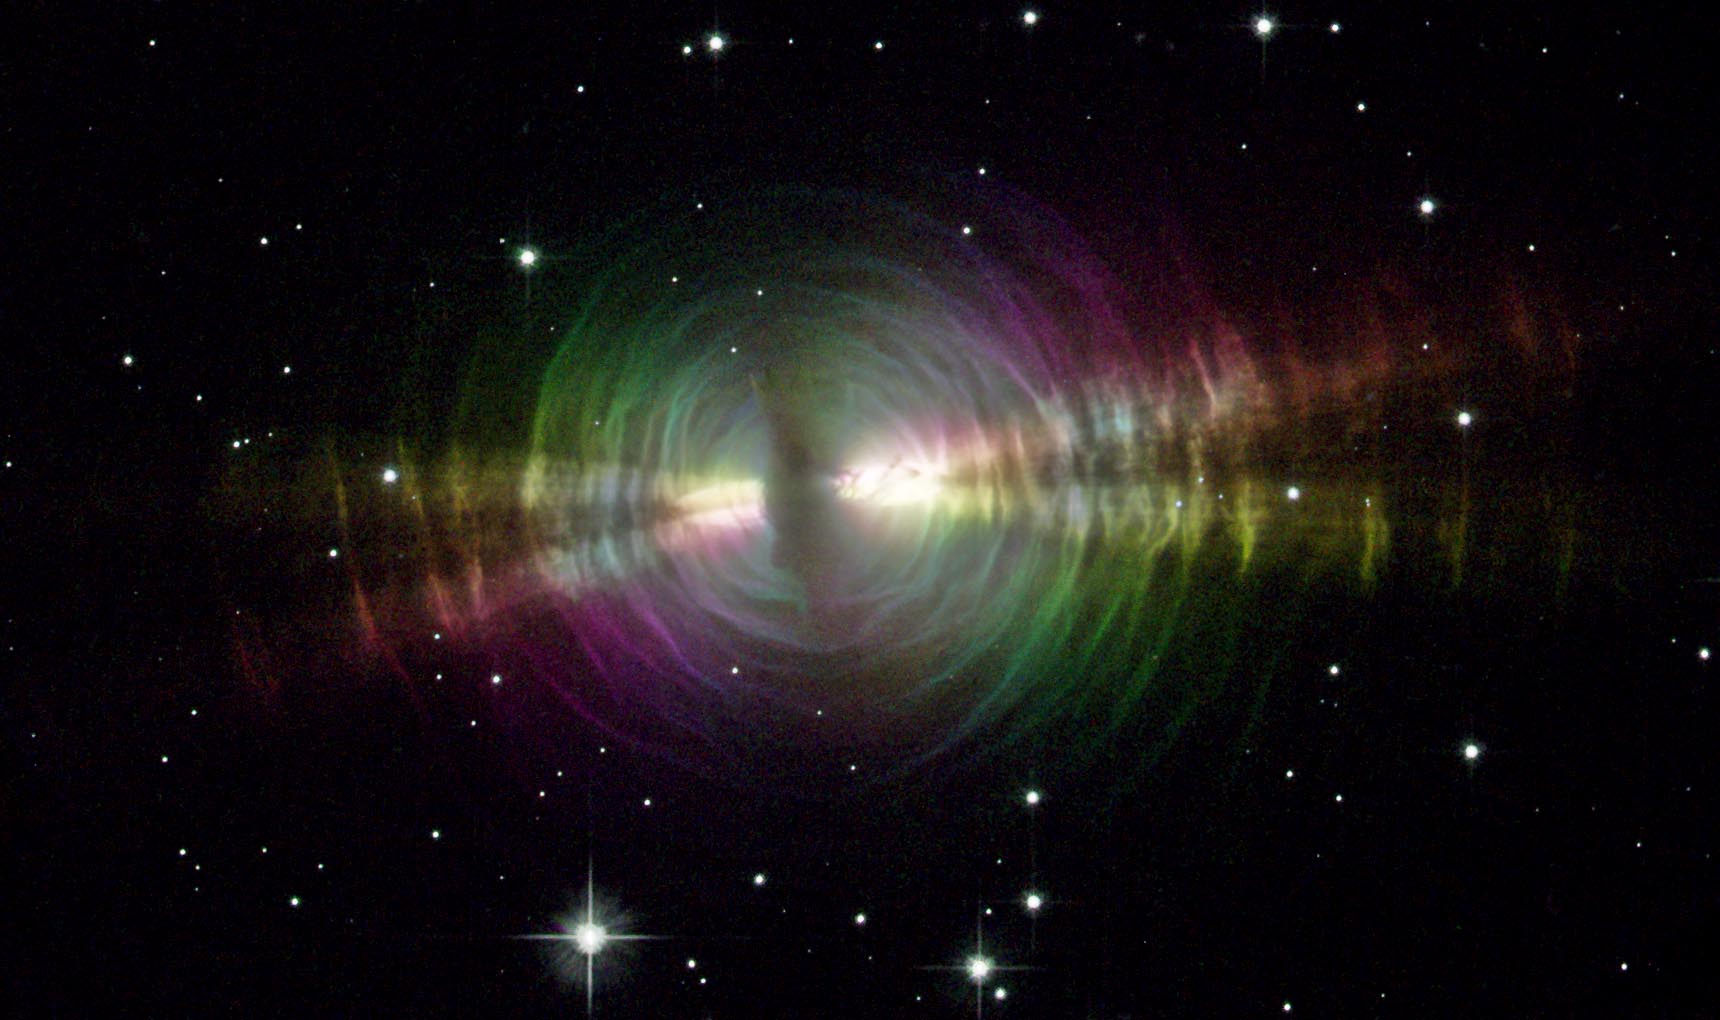 The Egg Nebula, a Planetary nebula discovered in 1996. Source: hubblesite.org